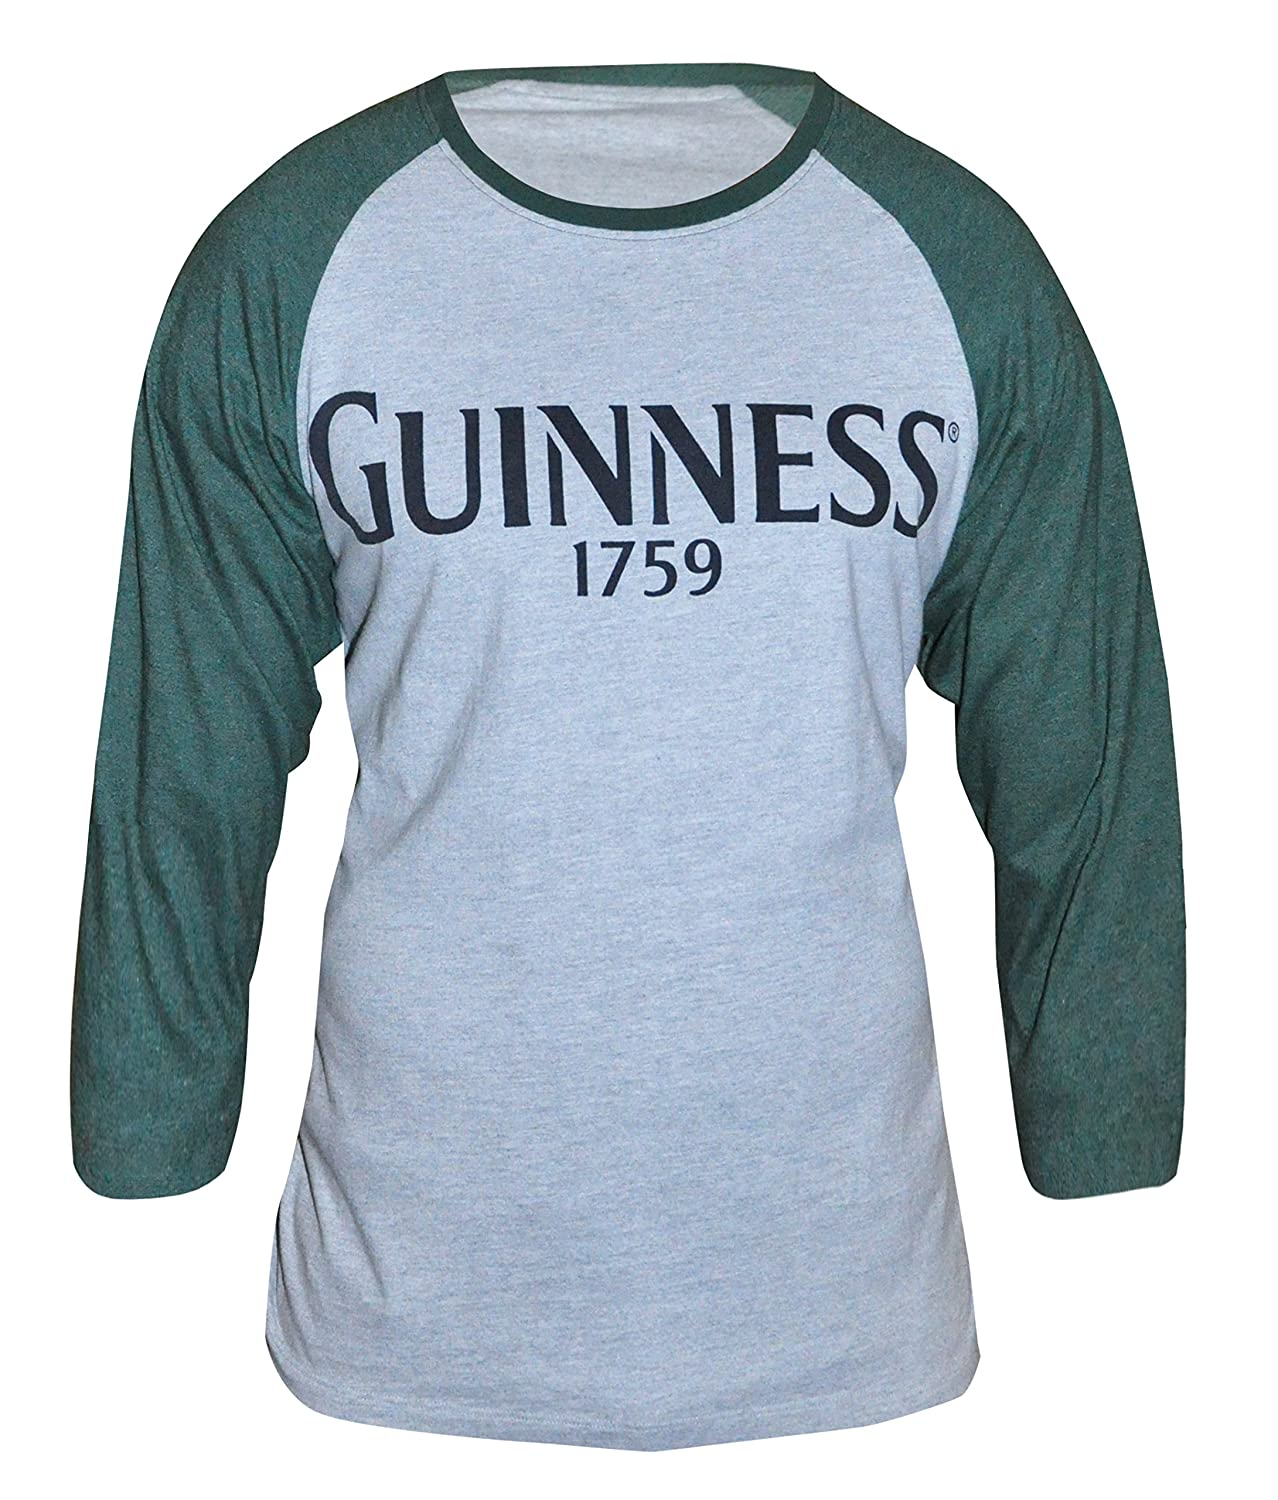 3d2ec3f0 Amazon.com: Guinness Green and Grey Heathered Vintage Baseball Tee - Cotton  Polyester Raglan Style Long Sleeve T-Shirt: Clothing